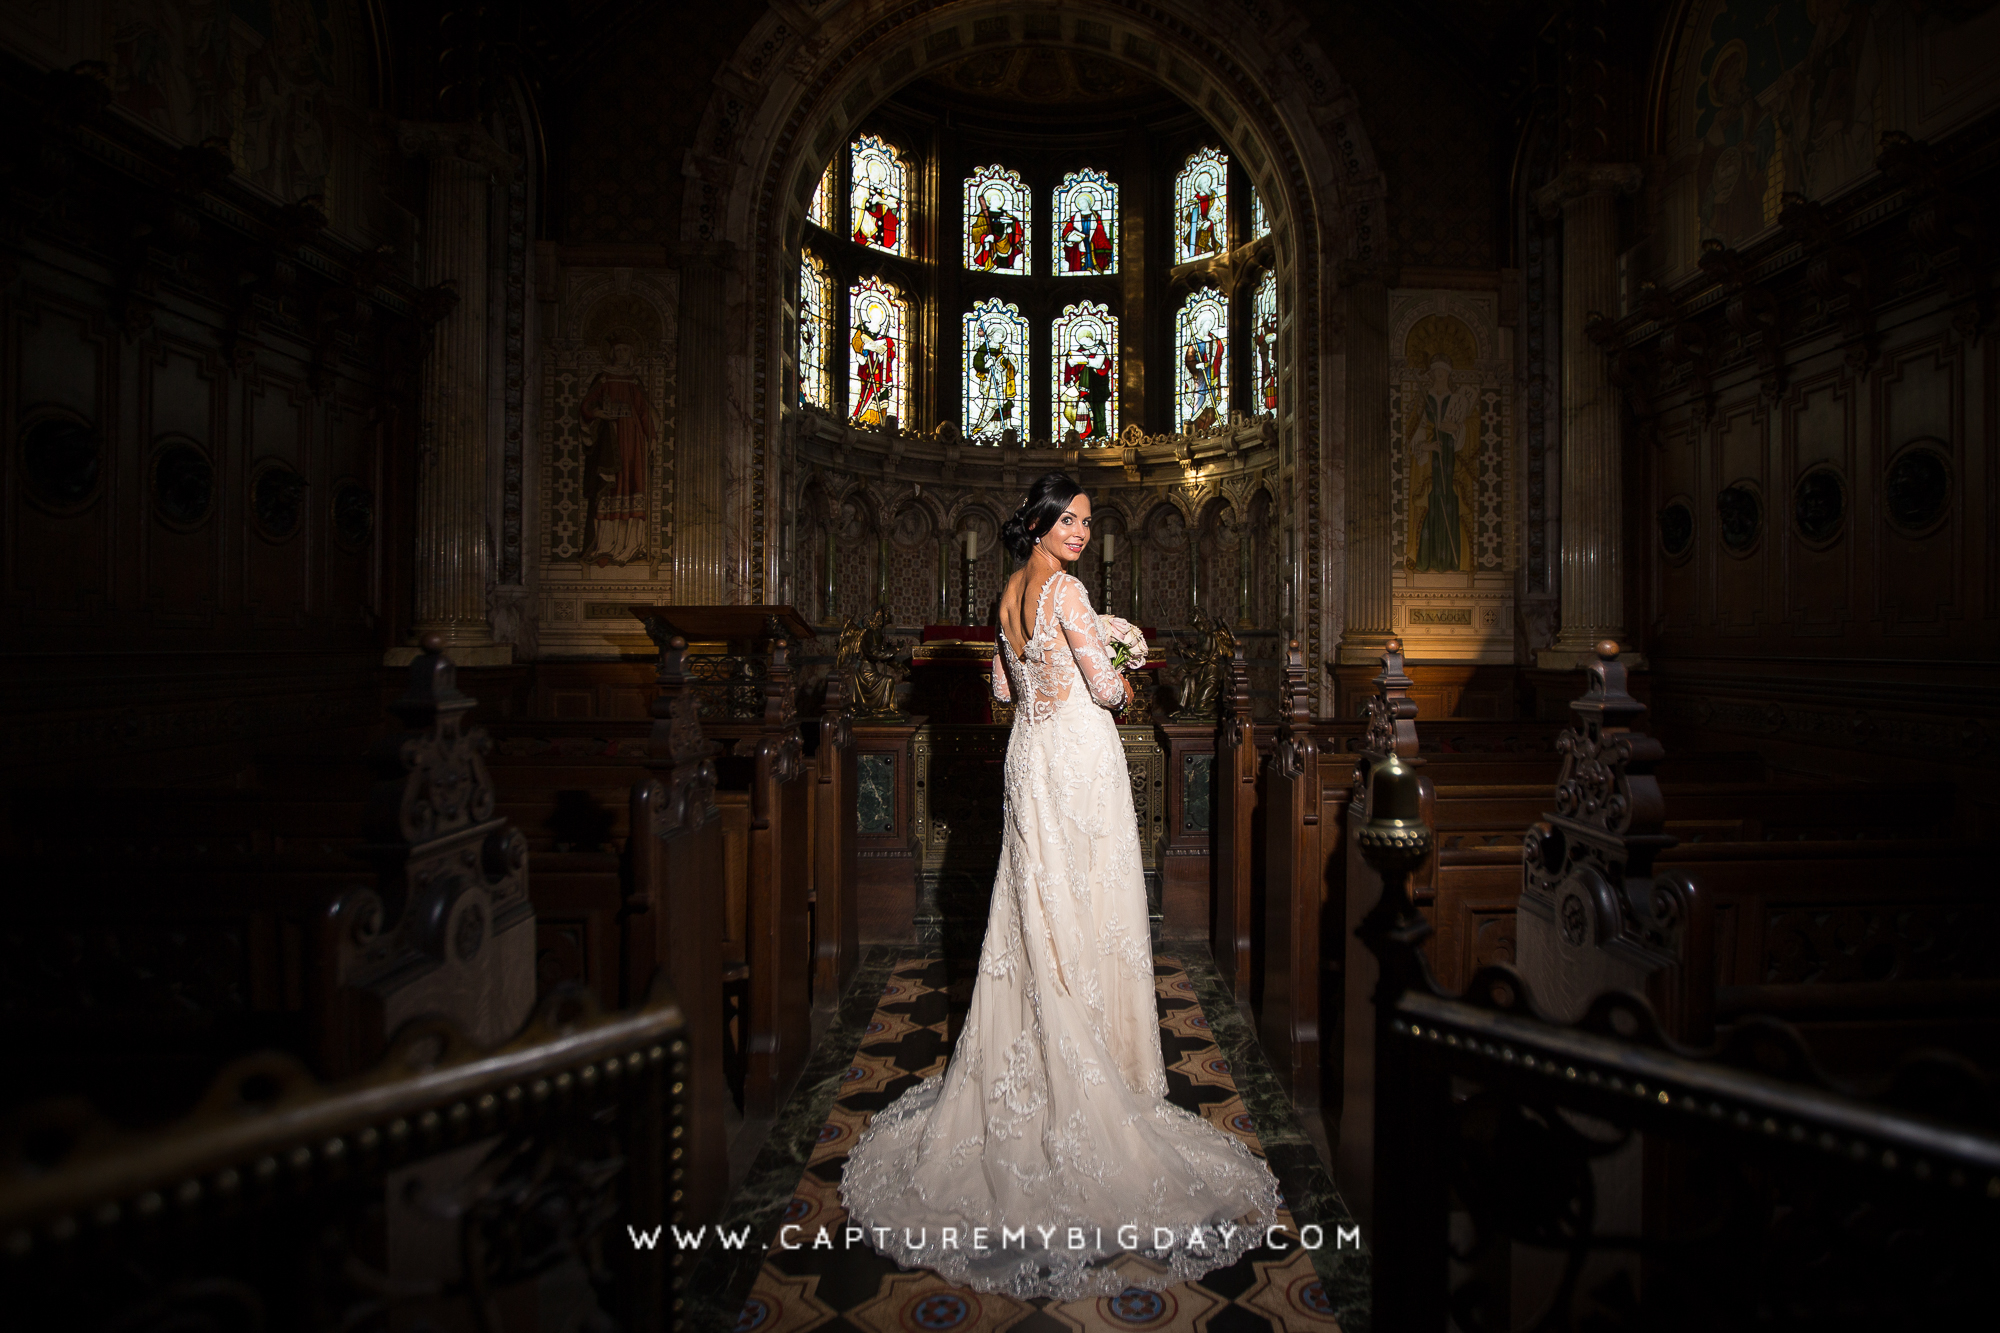 Bride at alter in Crewe hall